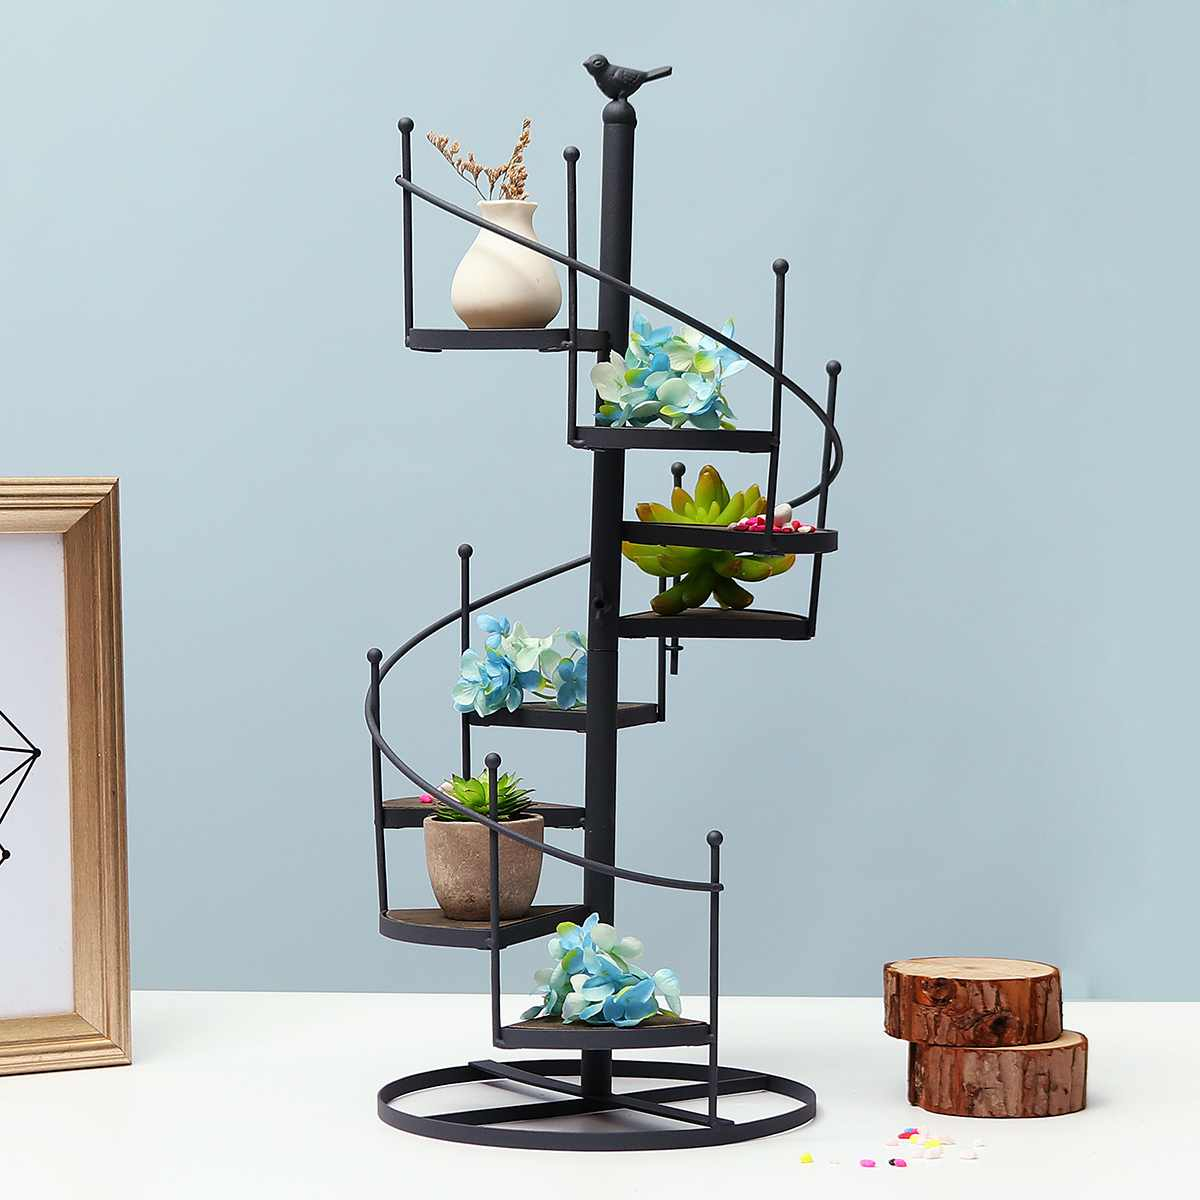 8 layer Stair shape Iron Plant Rack Metal Stand Plants Succulent shelf Desktop Garden flower Modern Decorative with wood plate|Plant Shelves| |  -